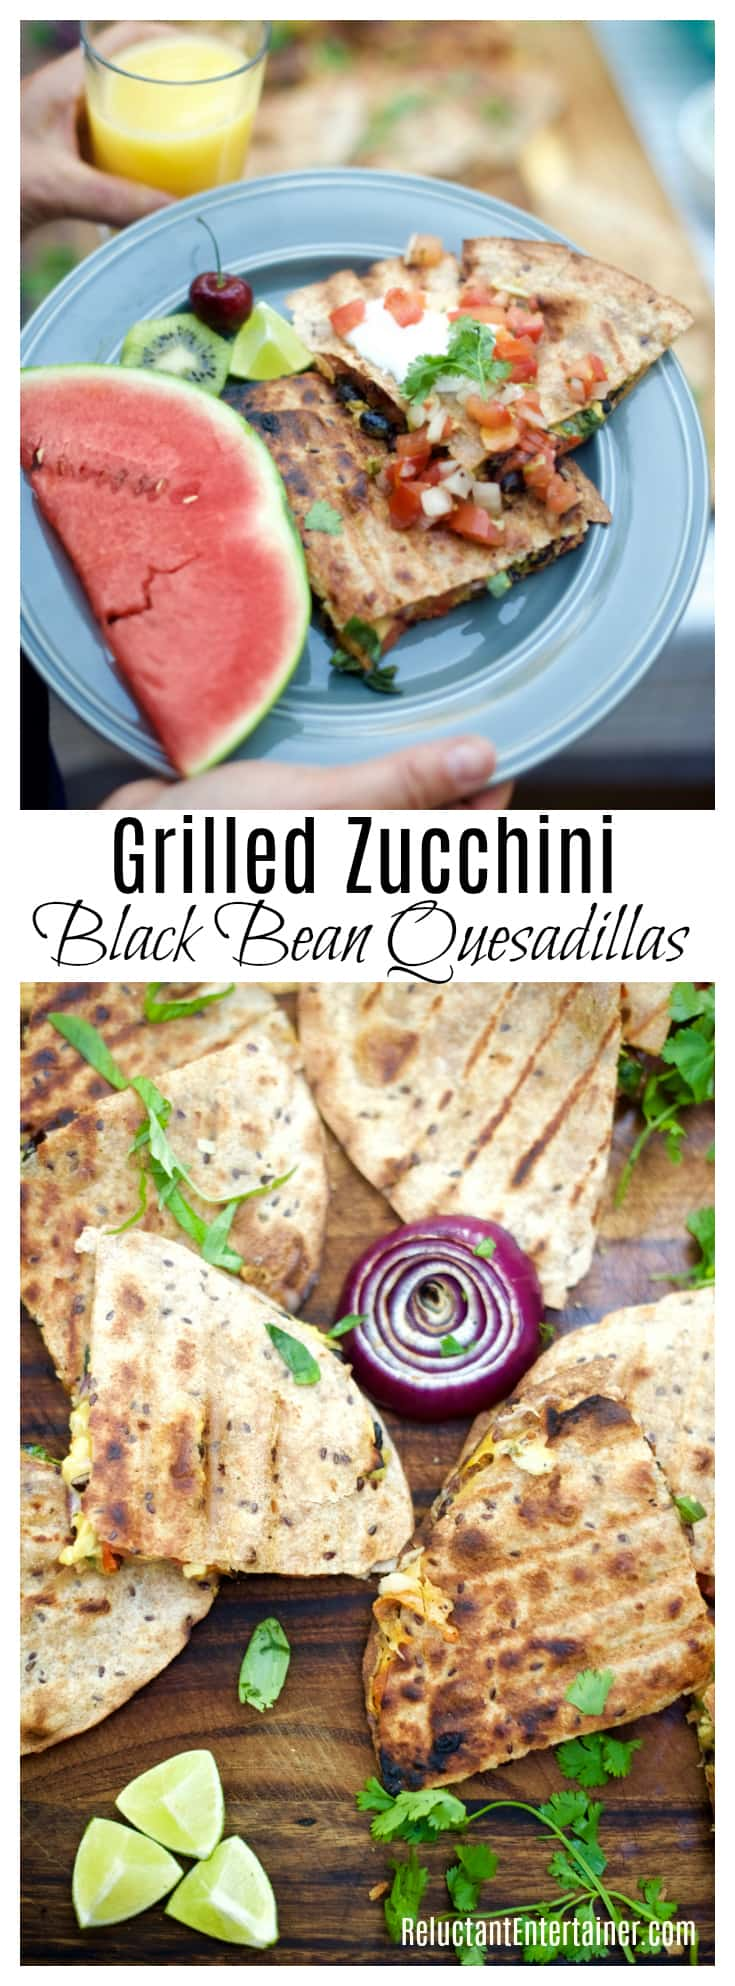 Grilled Zucchini Black Bean Quesadillas in partnership with Bush's Beans